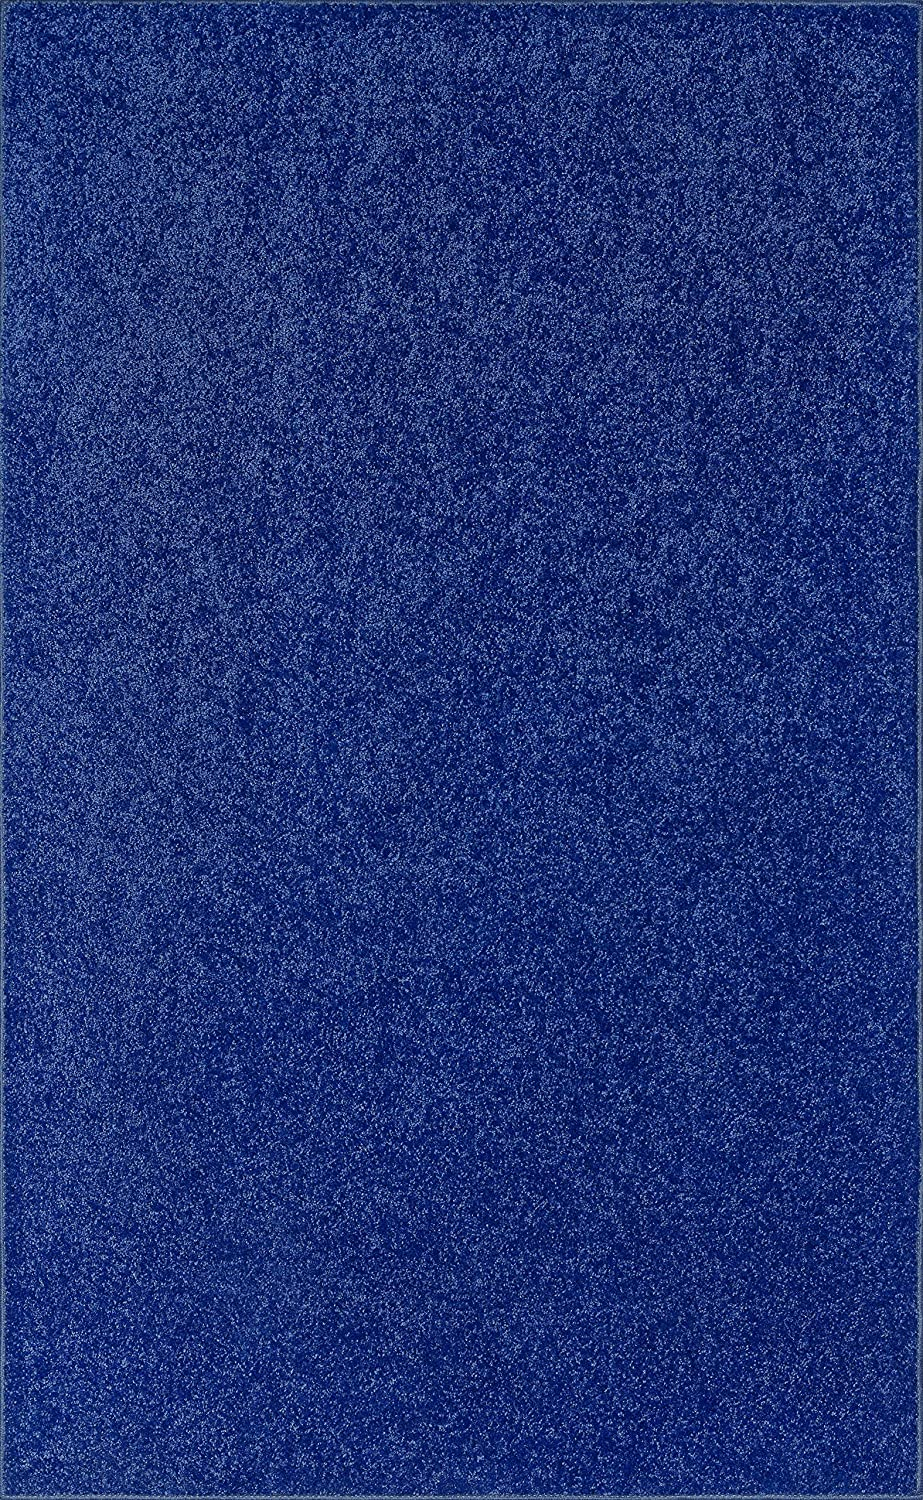 American Bright Solid Color Area Rugs Spring new work one after another 8' 2' Blue Neon x Price reduction